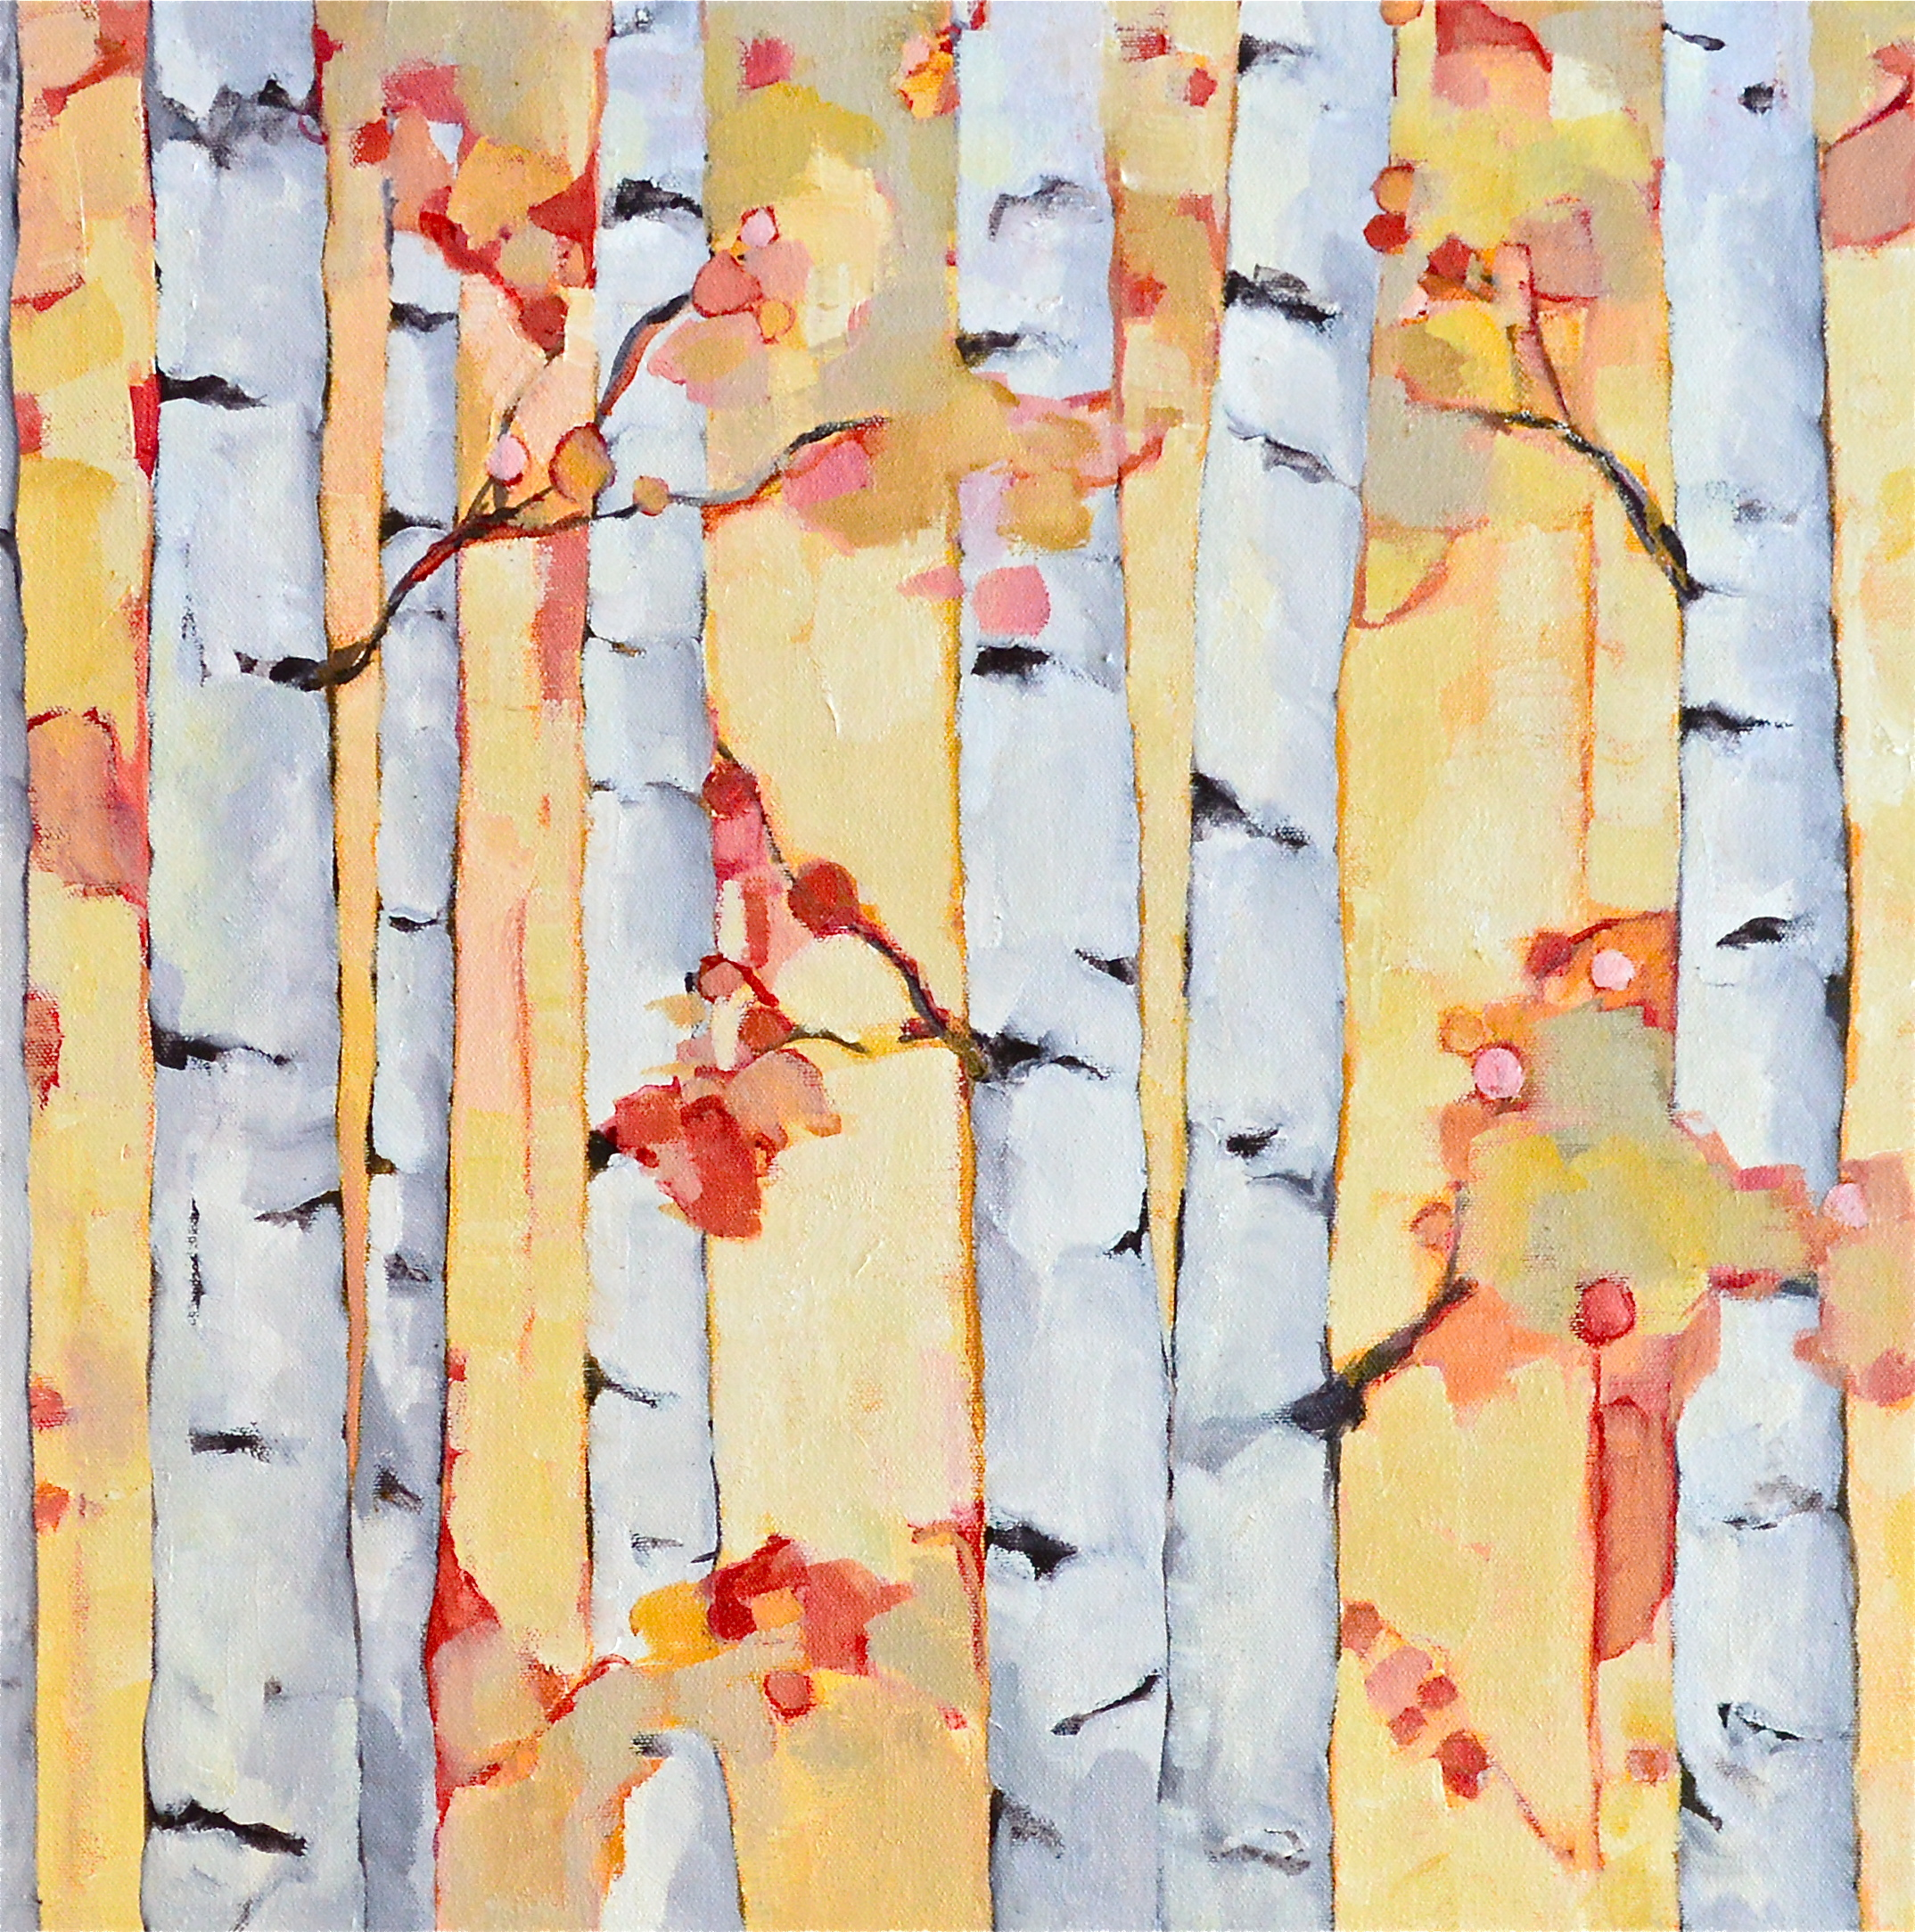 Fall Birches #2, oil on canvas, 24x24 SOLD